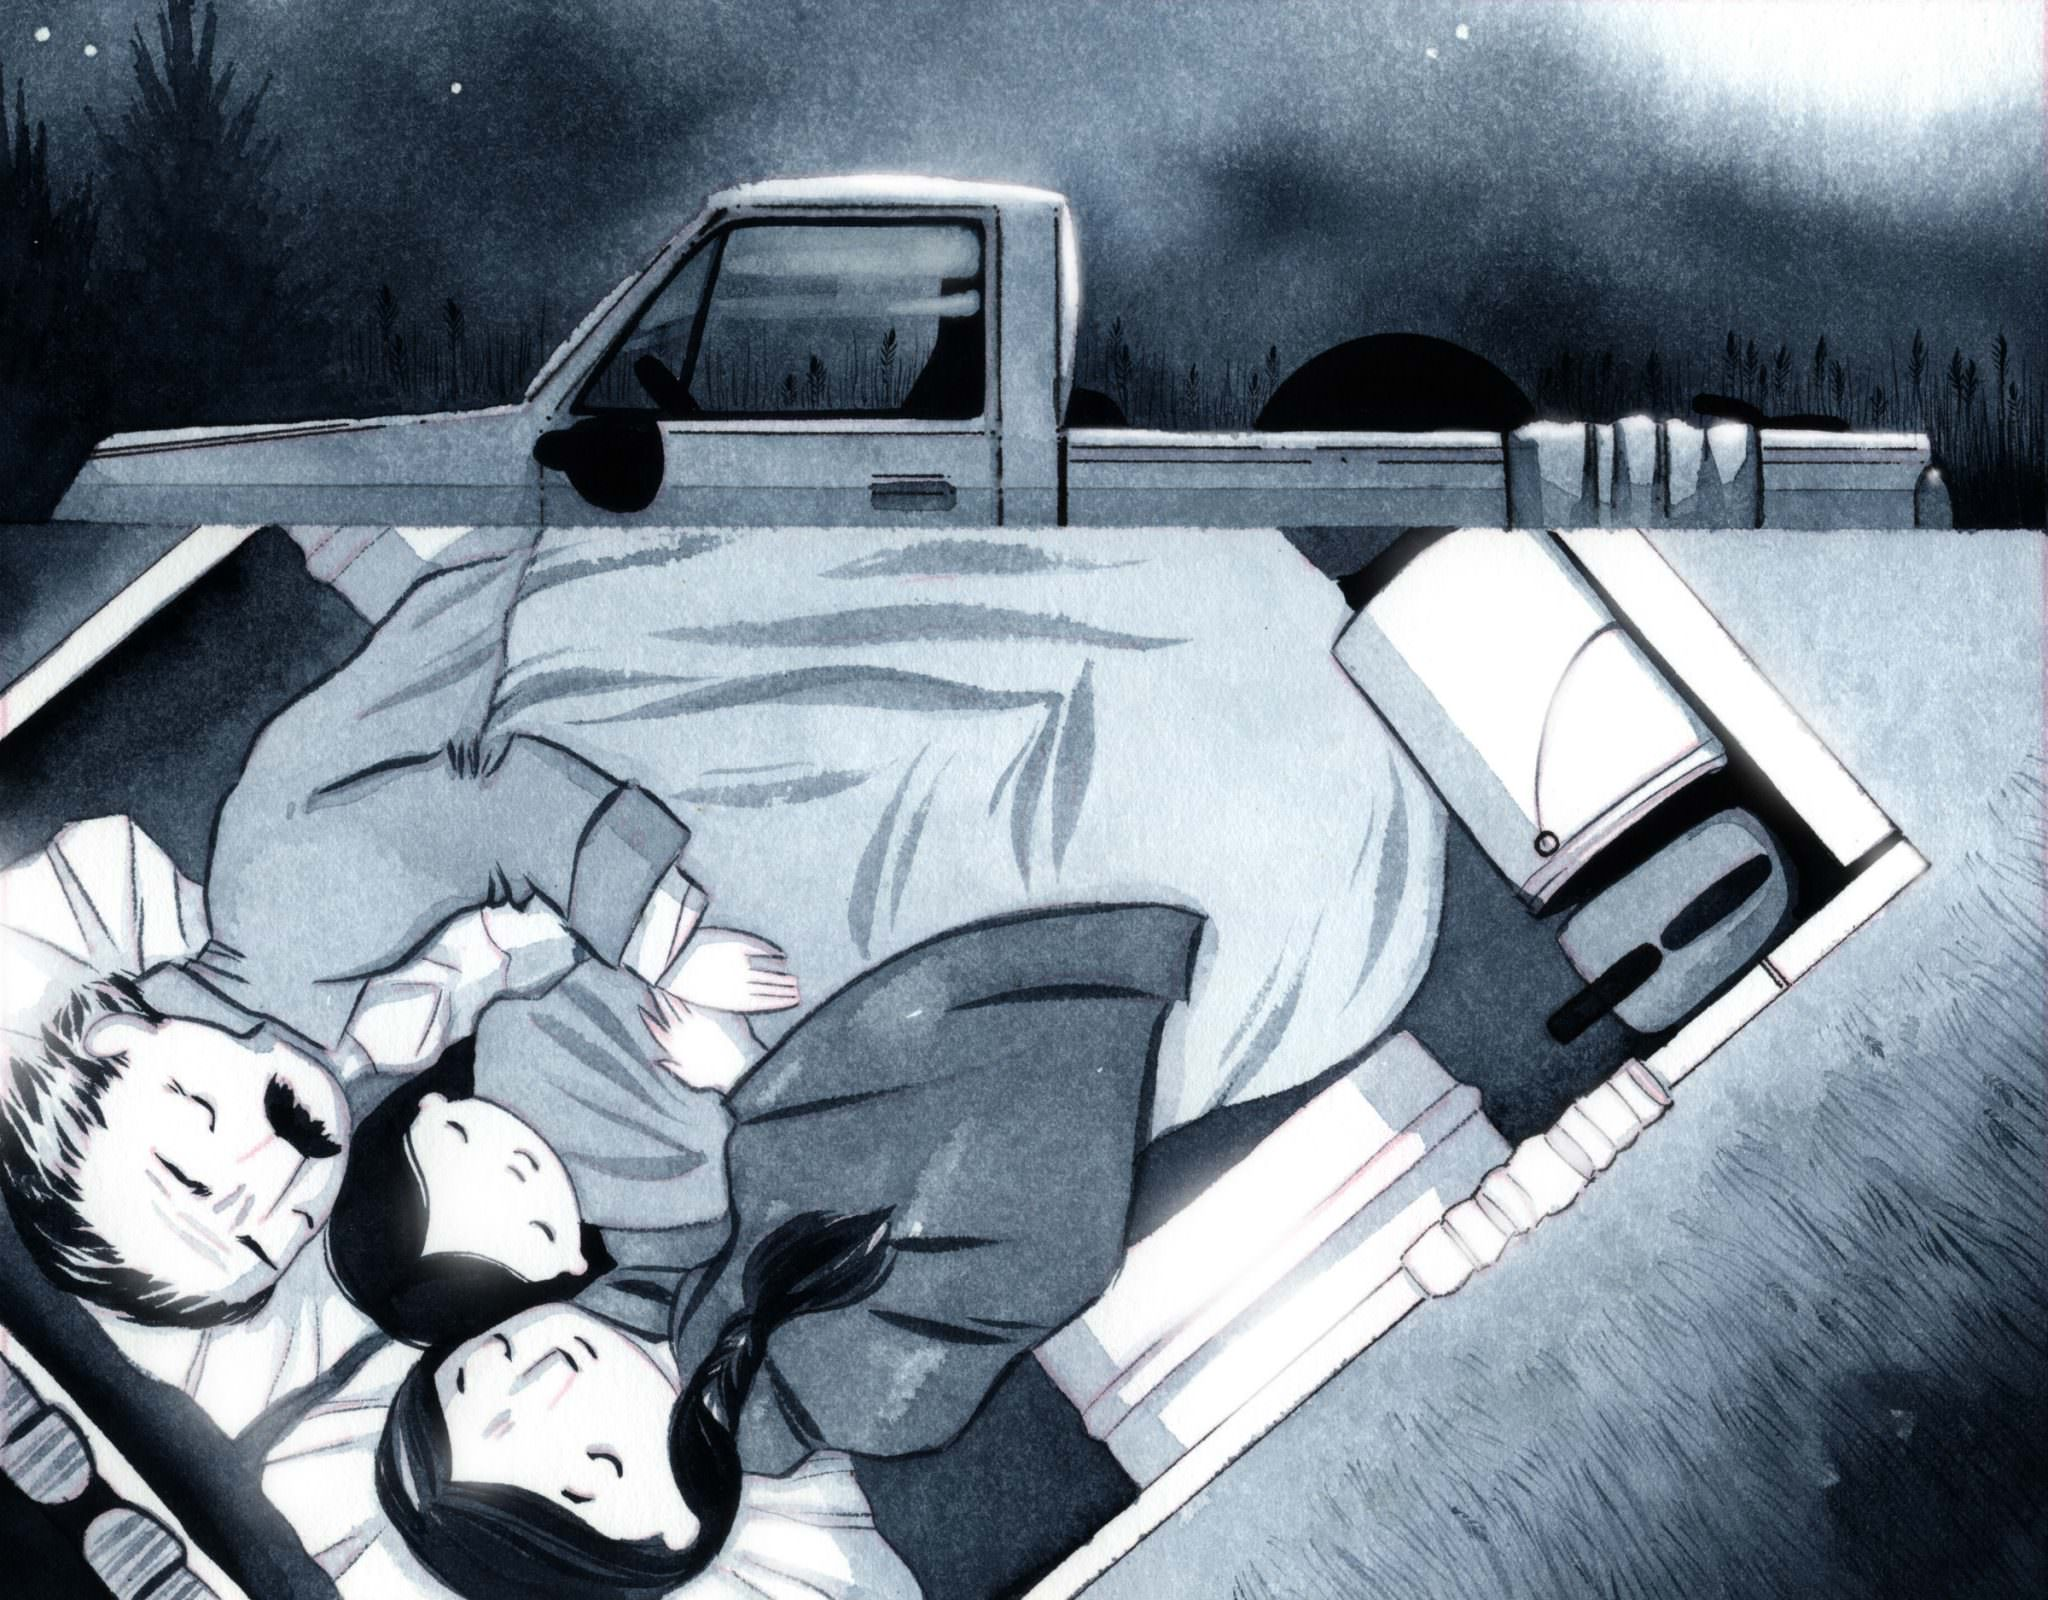 Illustration: a family sleeps peacefully in the back of a pickup truck under moonlight.